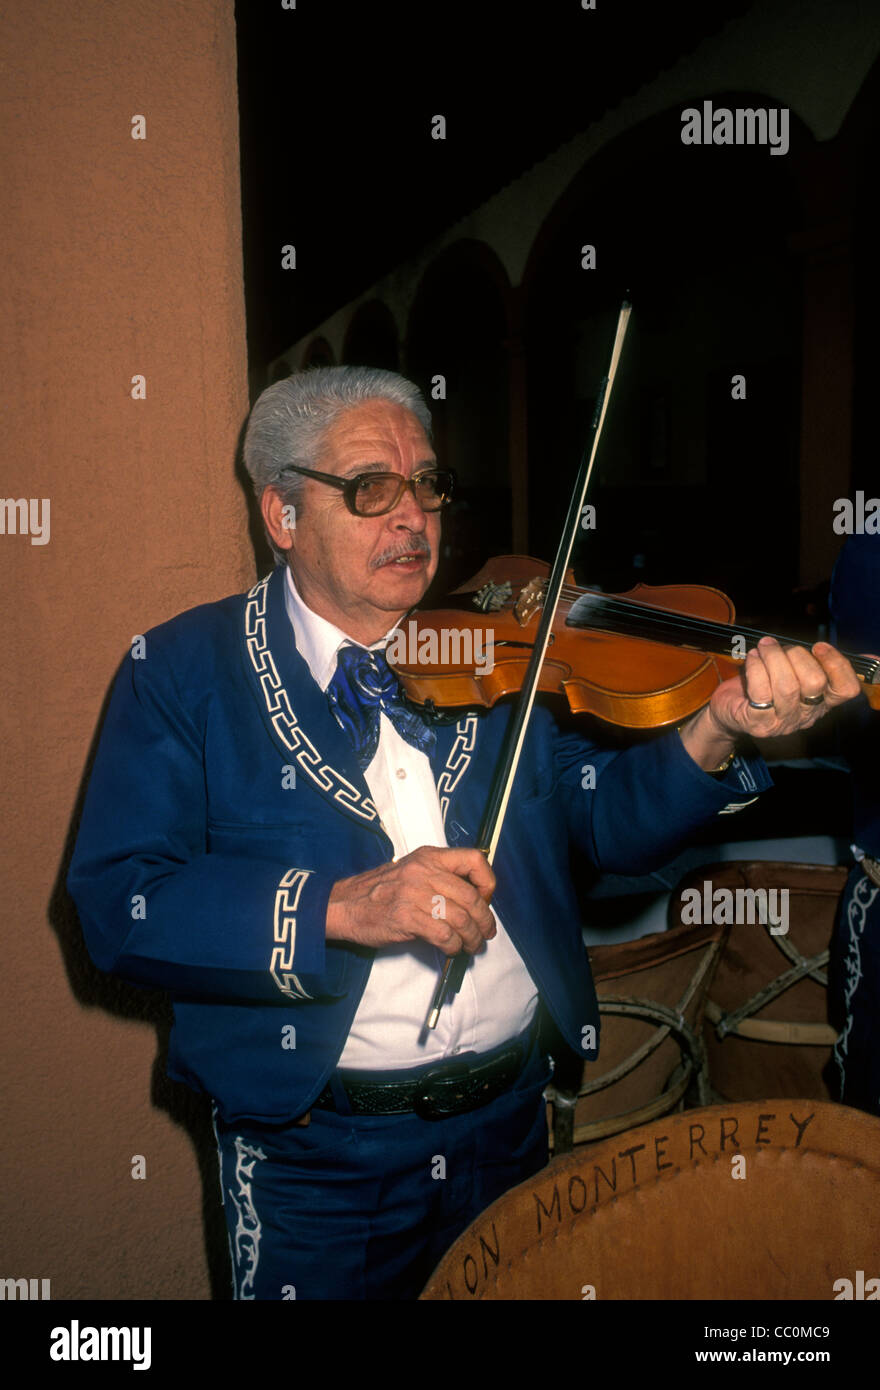 1, one, Mexican man, violin player, violinist, playing violin, mariachi band, mariachi band member, Tlaquepaque, - Stock Image